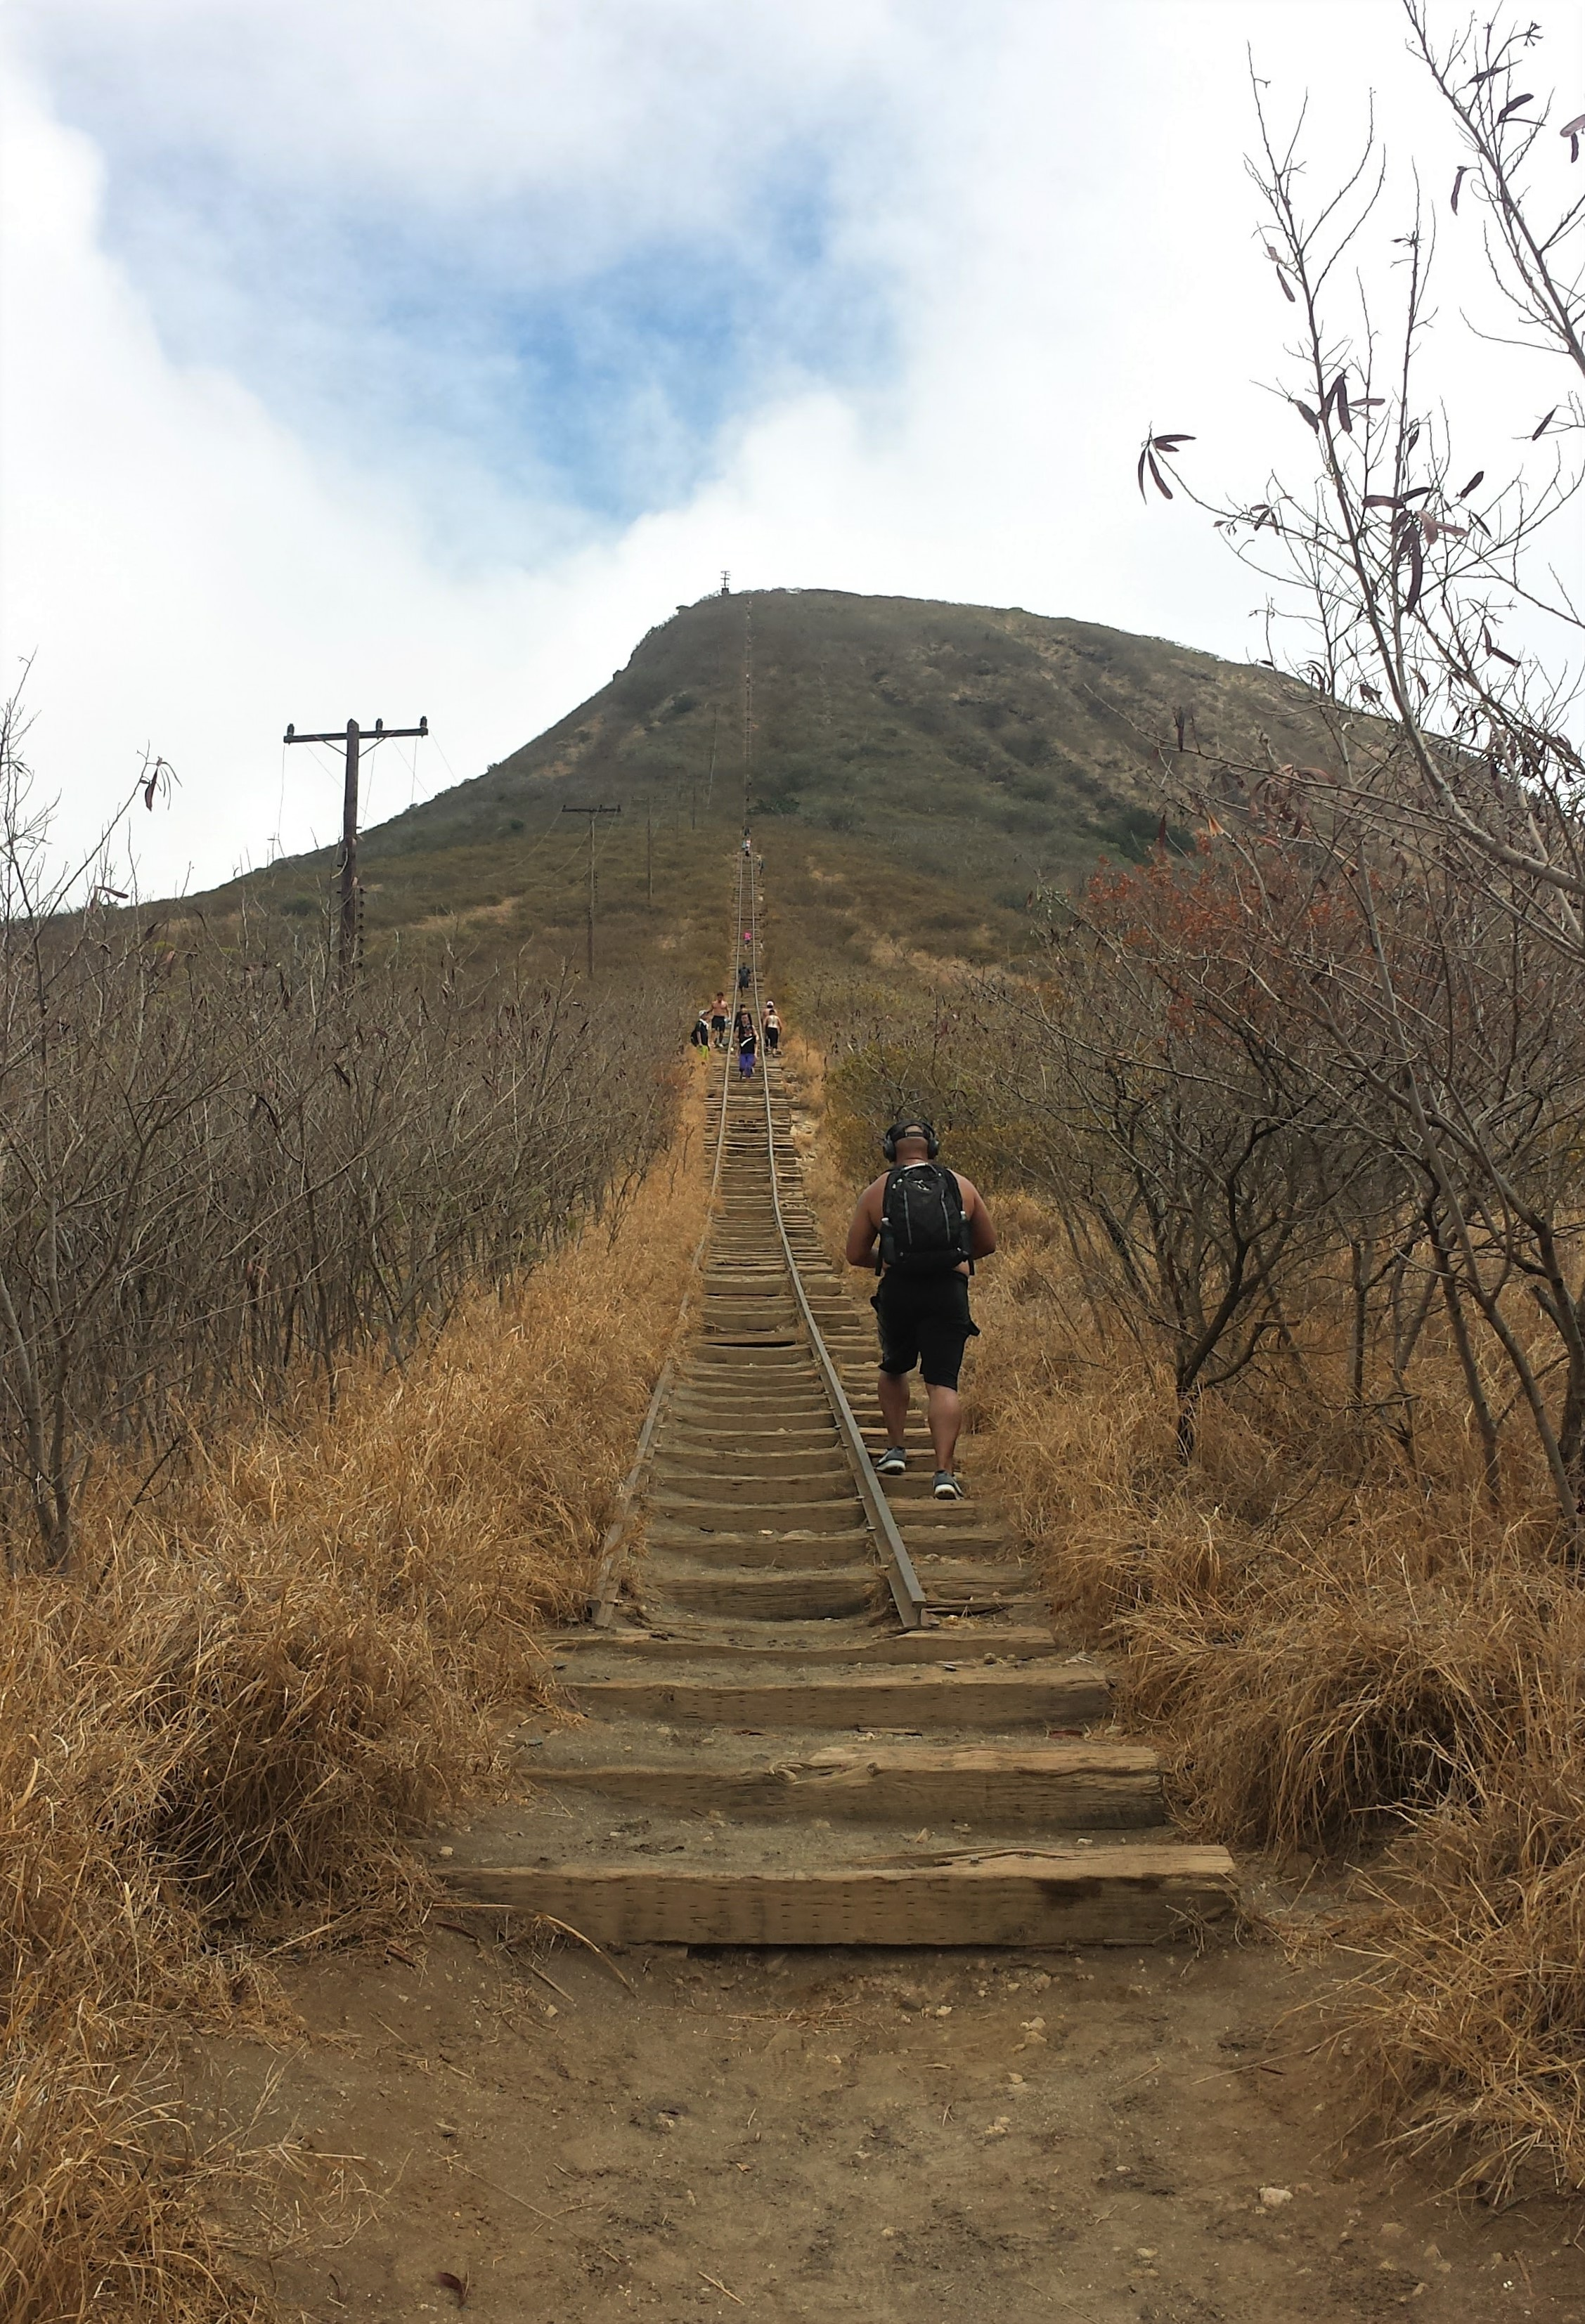 A view up the railtracks from the bottom of the Koko head trail - One of the best hikes in Oahu